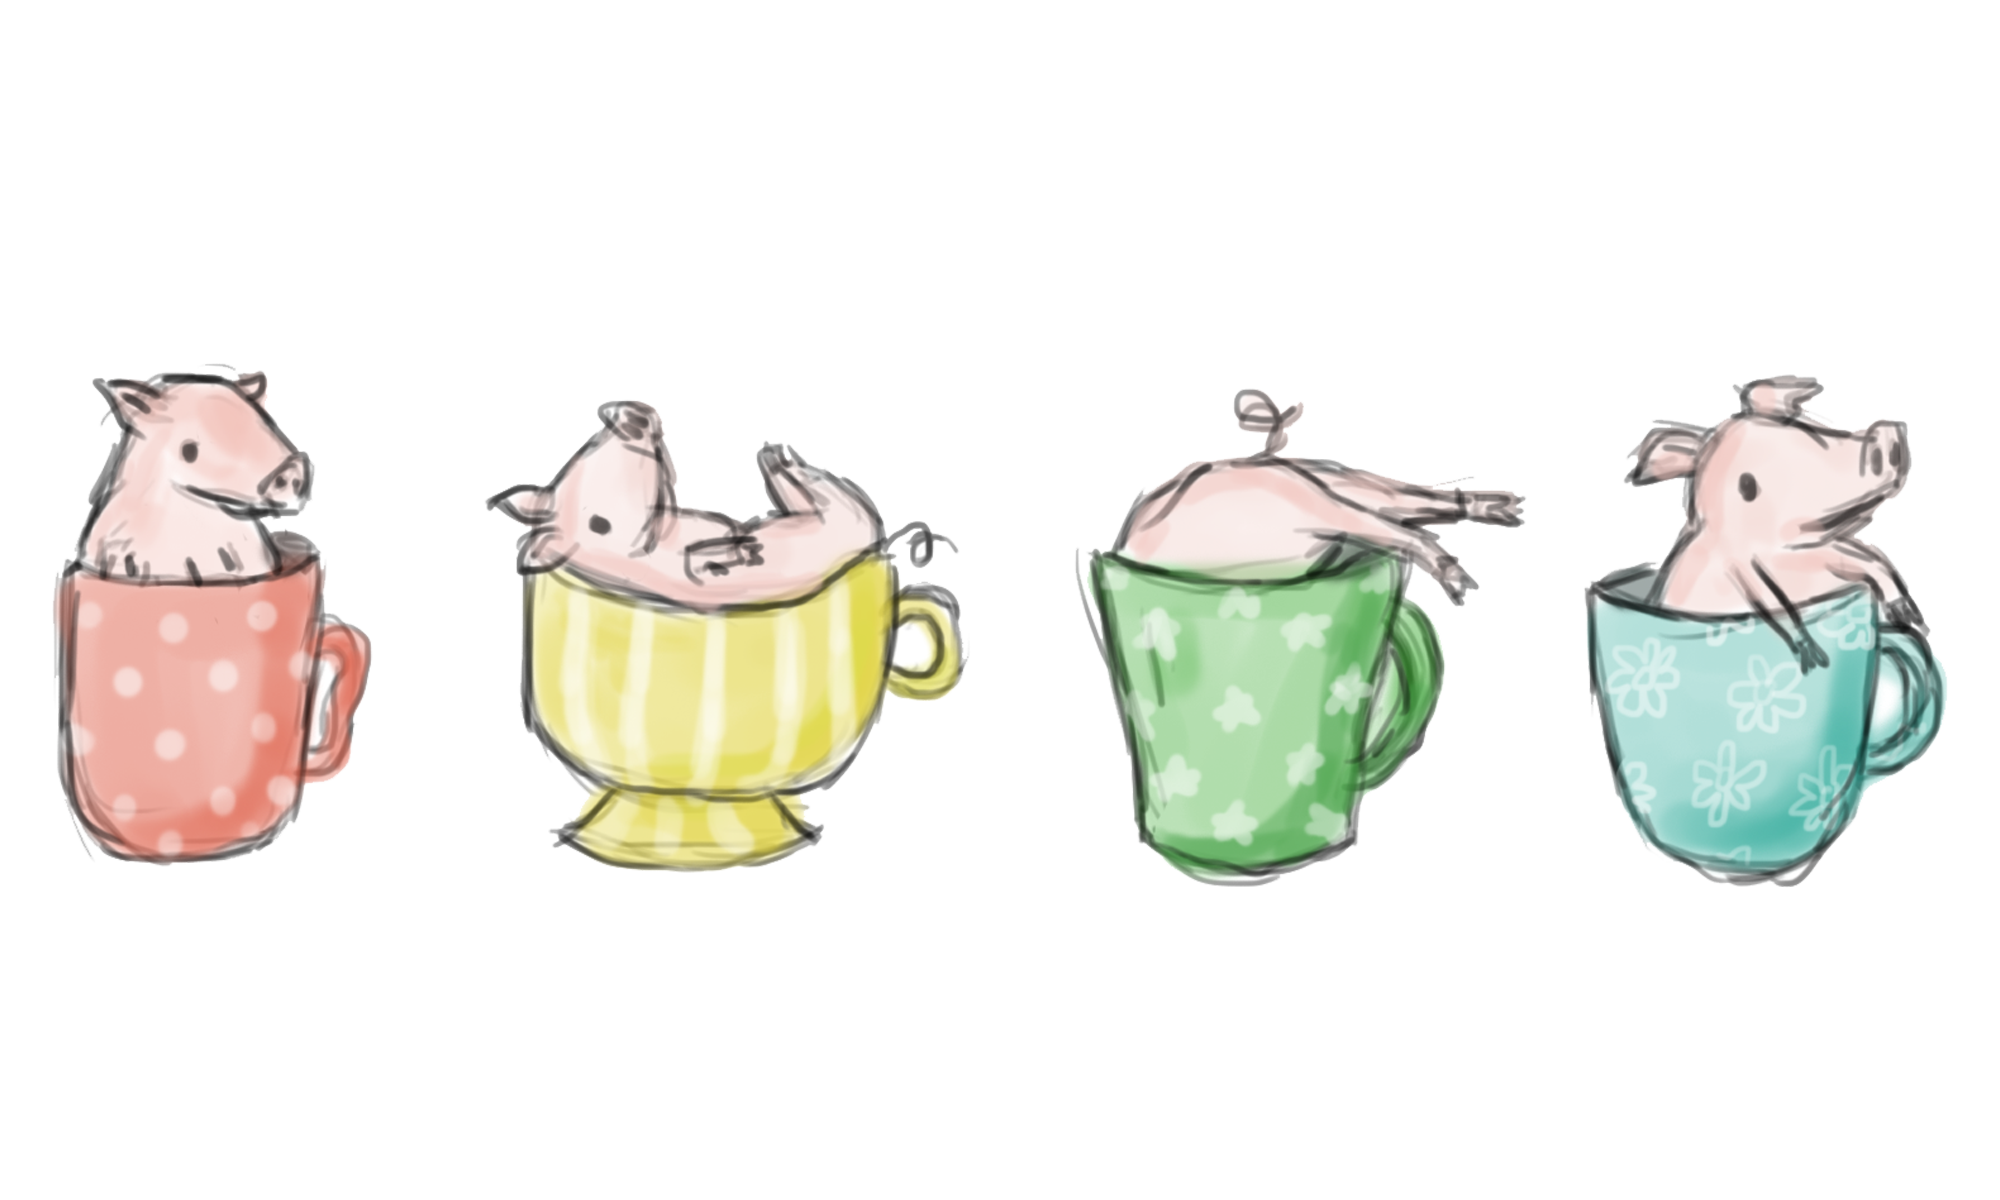 Teacup Pigs, Get them here! http://www.redbubble.com/people/thymeslikethese/works/23659887-teacup-piglets-cute-teacup-animals?asc=u&c=600675-teacup-animals